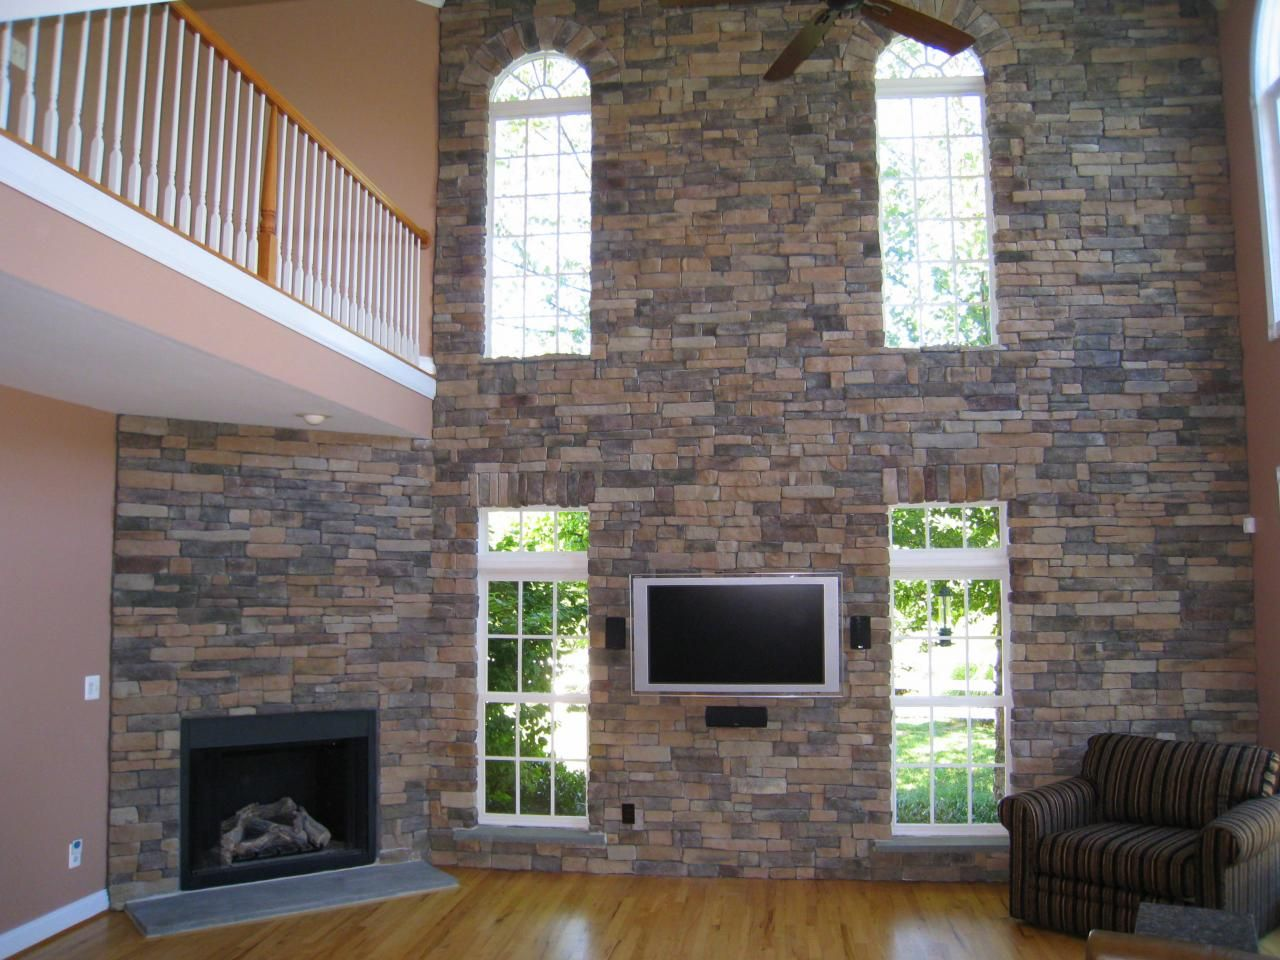 Love Stone Interior Accent Walls So Easy To Do With DIY Faux Ledgestone  Stone Panels.